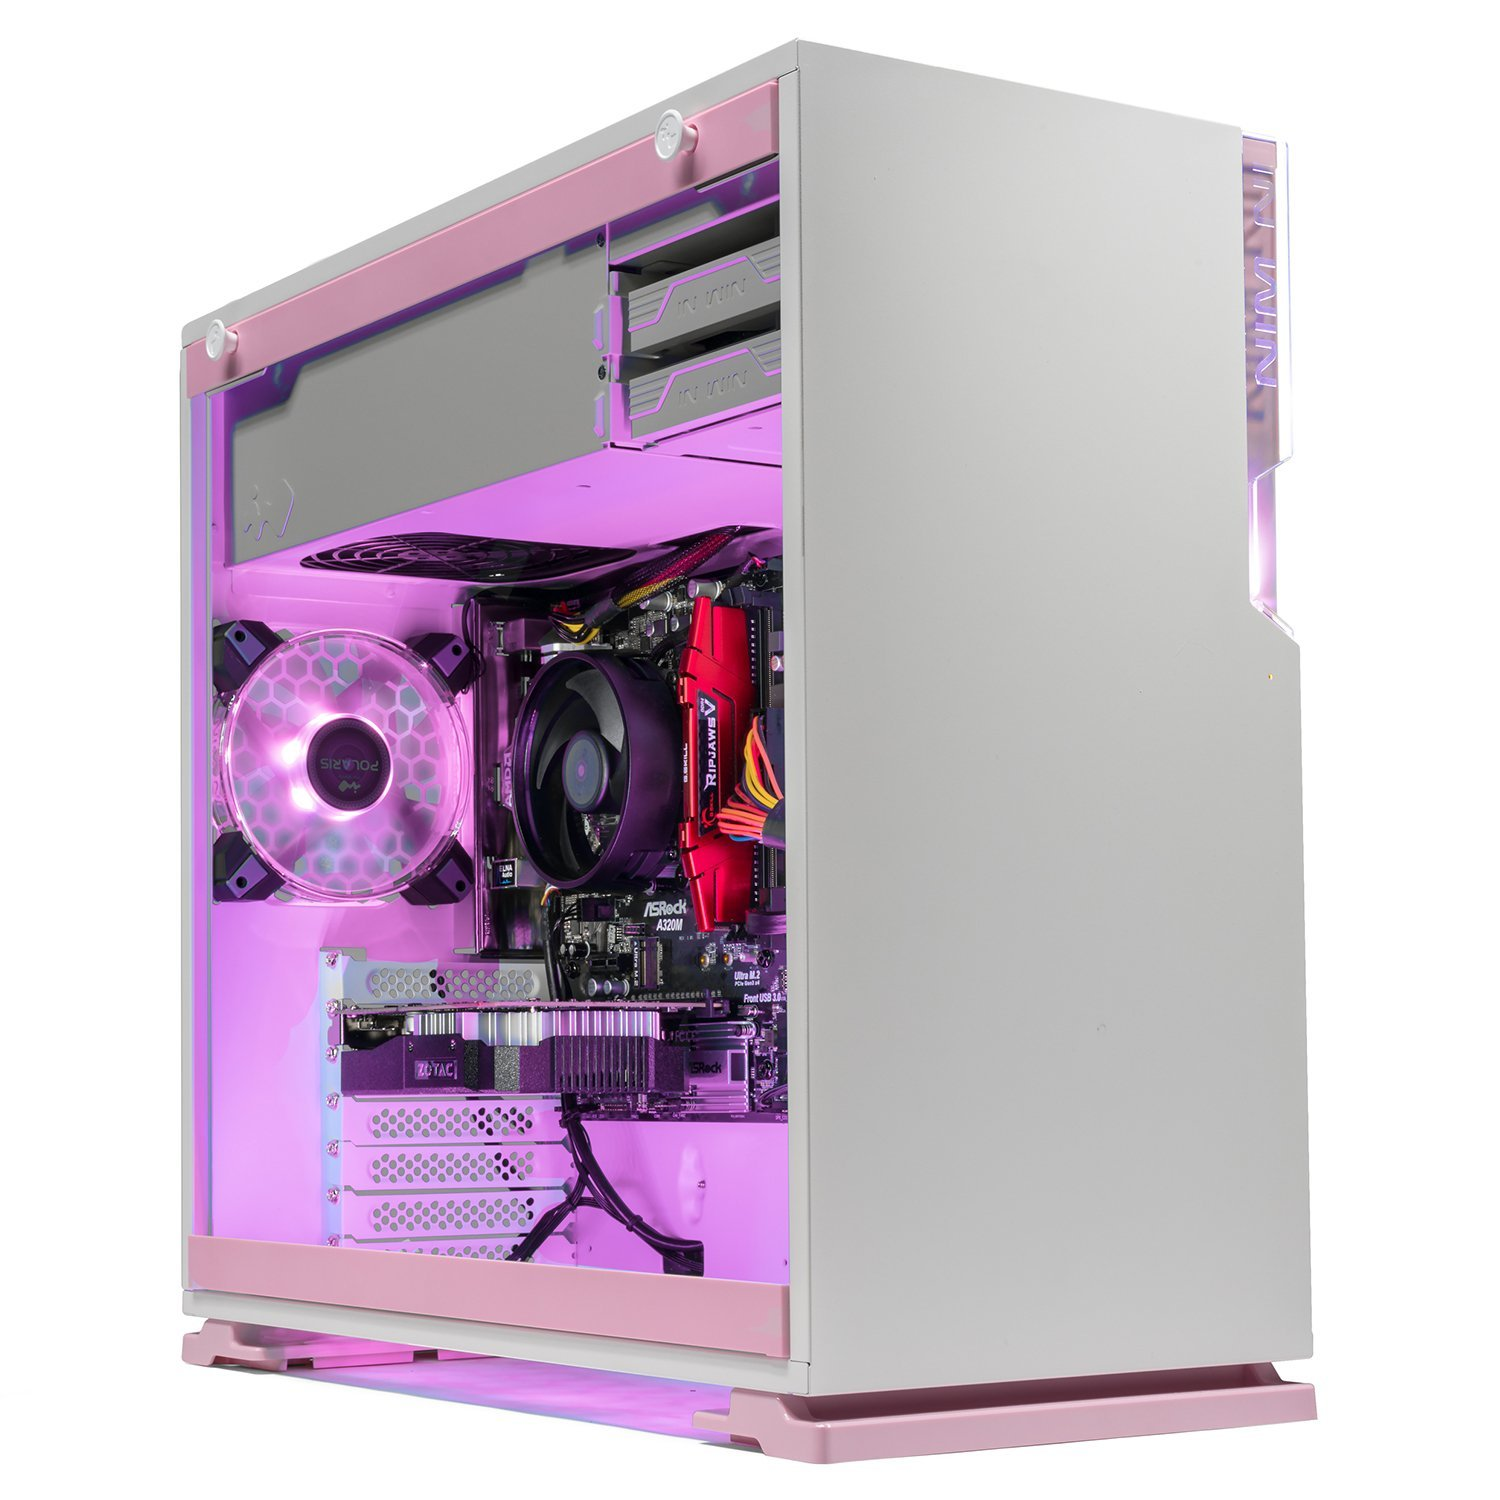 [Limited Pink Edition] SkyTech Venus Desktop Gaming Computer PC (Ryzen 3 1200, GTX 1050 Ti 4GB, 8GB DDR4, 1TB HDD, 500 Watts PSU, Win 10 Home, RGB Silent Fans) (GTX 1050 TI | 8GB | No SSD)